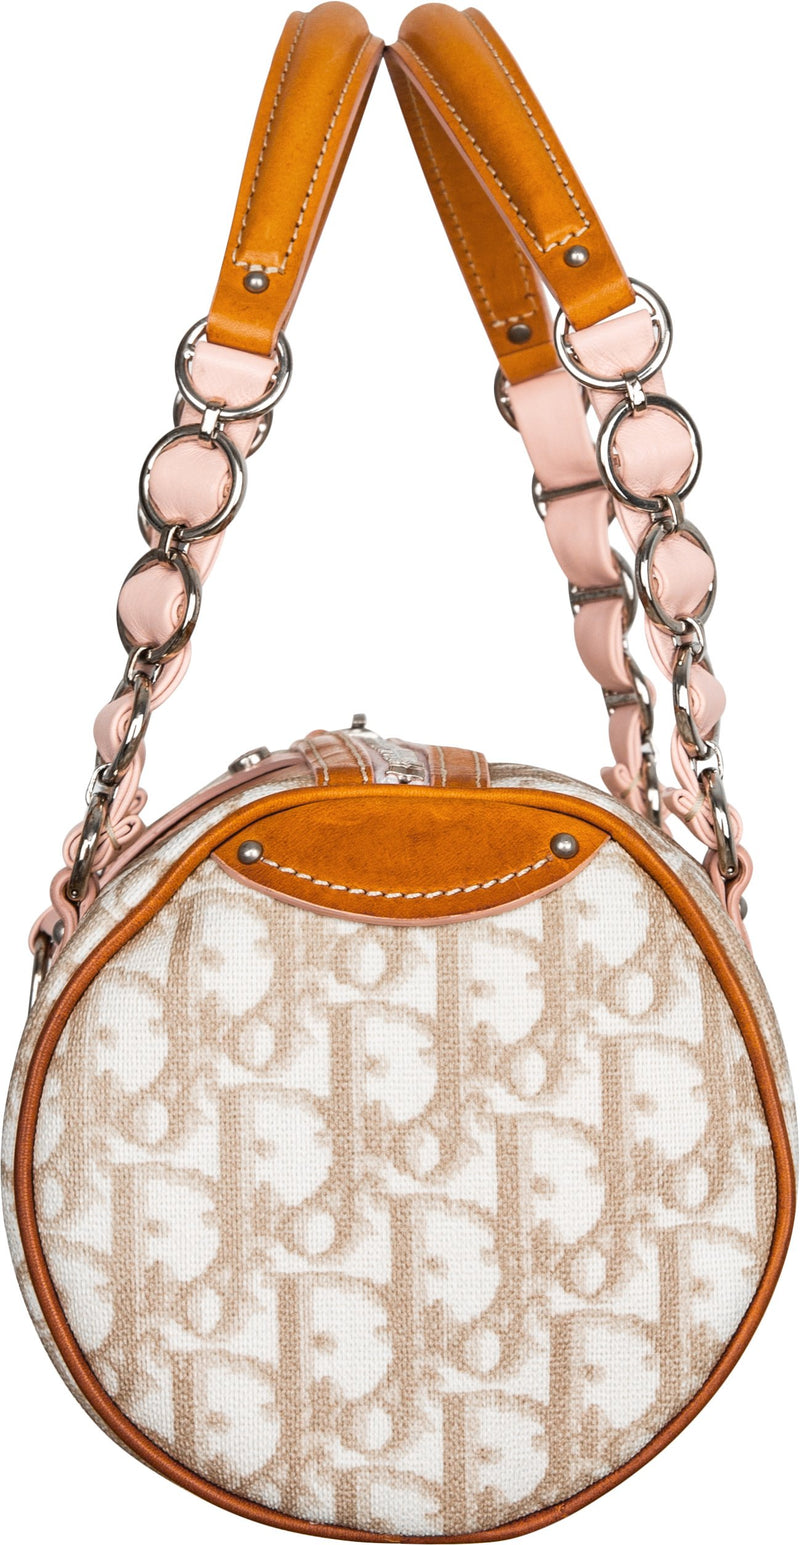 Christian Dior Spring 2006 Romantique Diorissimo Bag